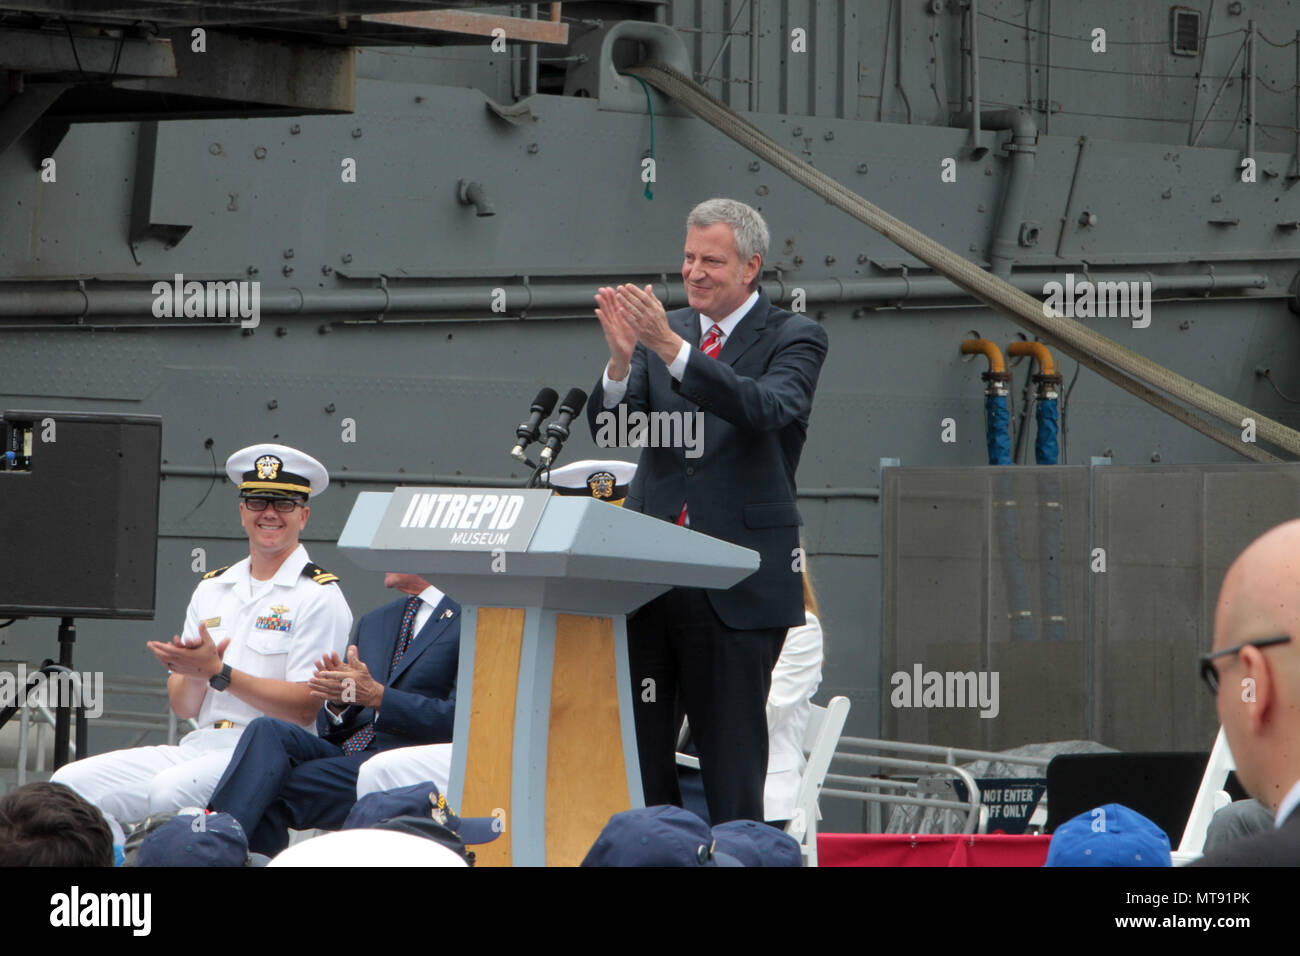 New York, NY, USA. 28th May, 2018. New York City Mayor Bill De Blasio attends the 2018 Memorial Day Ceremony held aboard the U.S.S Intrepid Sea, Air, Space Museum Complex on May 28, 2018 in New York City. Credit: Mpi43/Media Punch/Alamy Live News - Stock Image